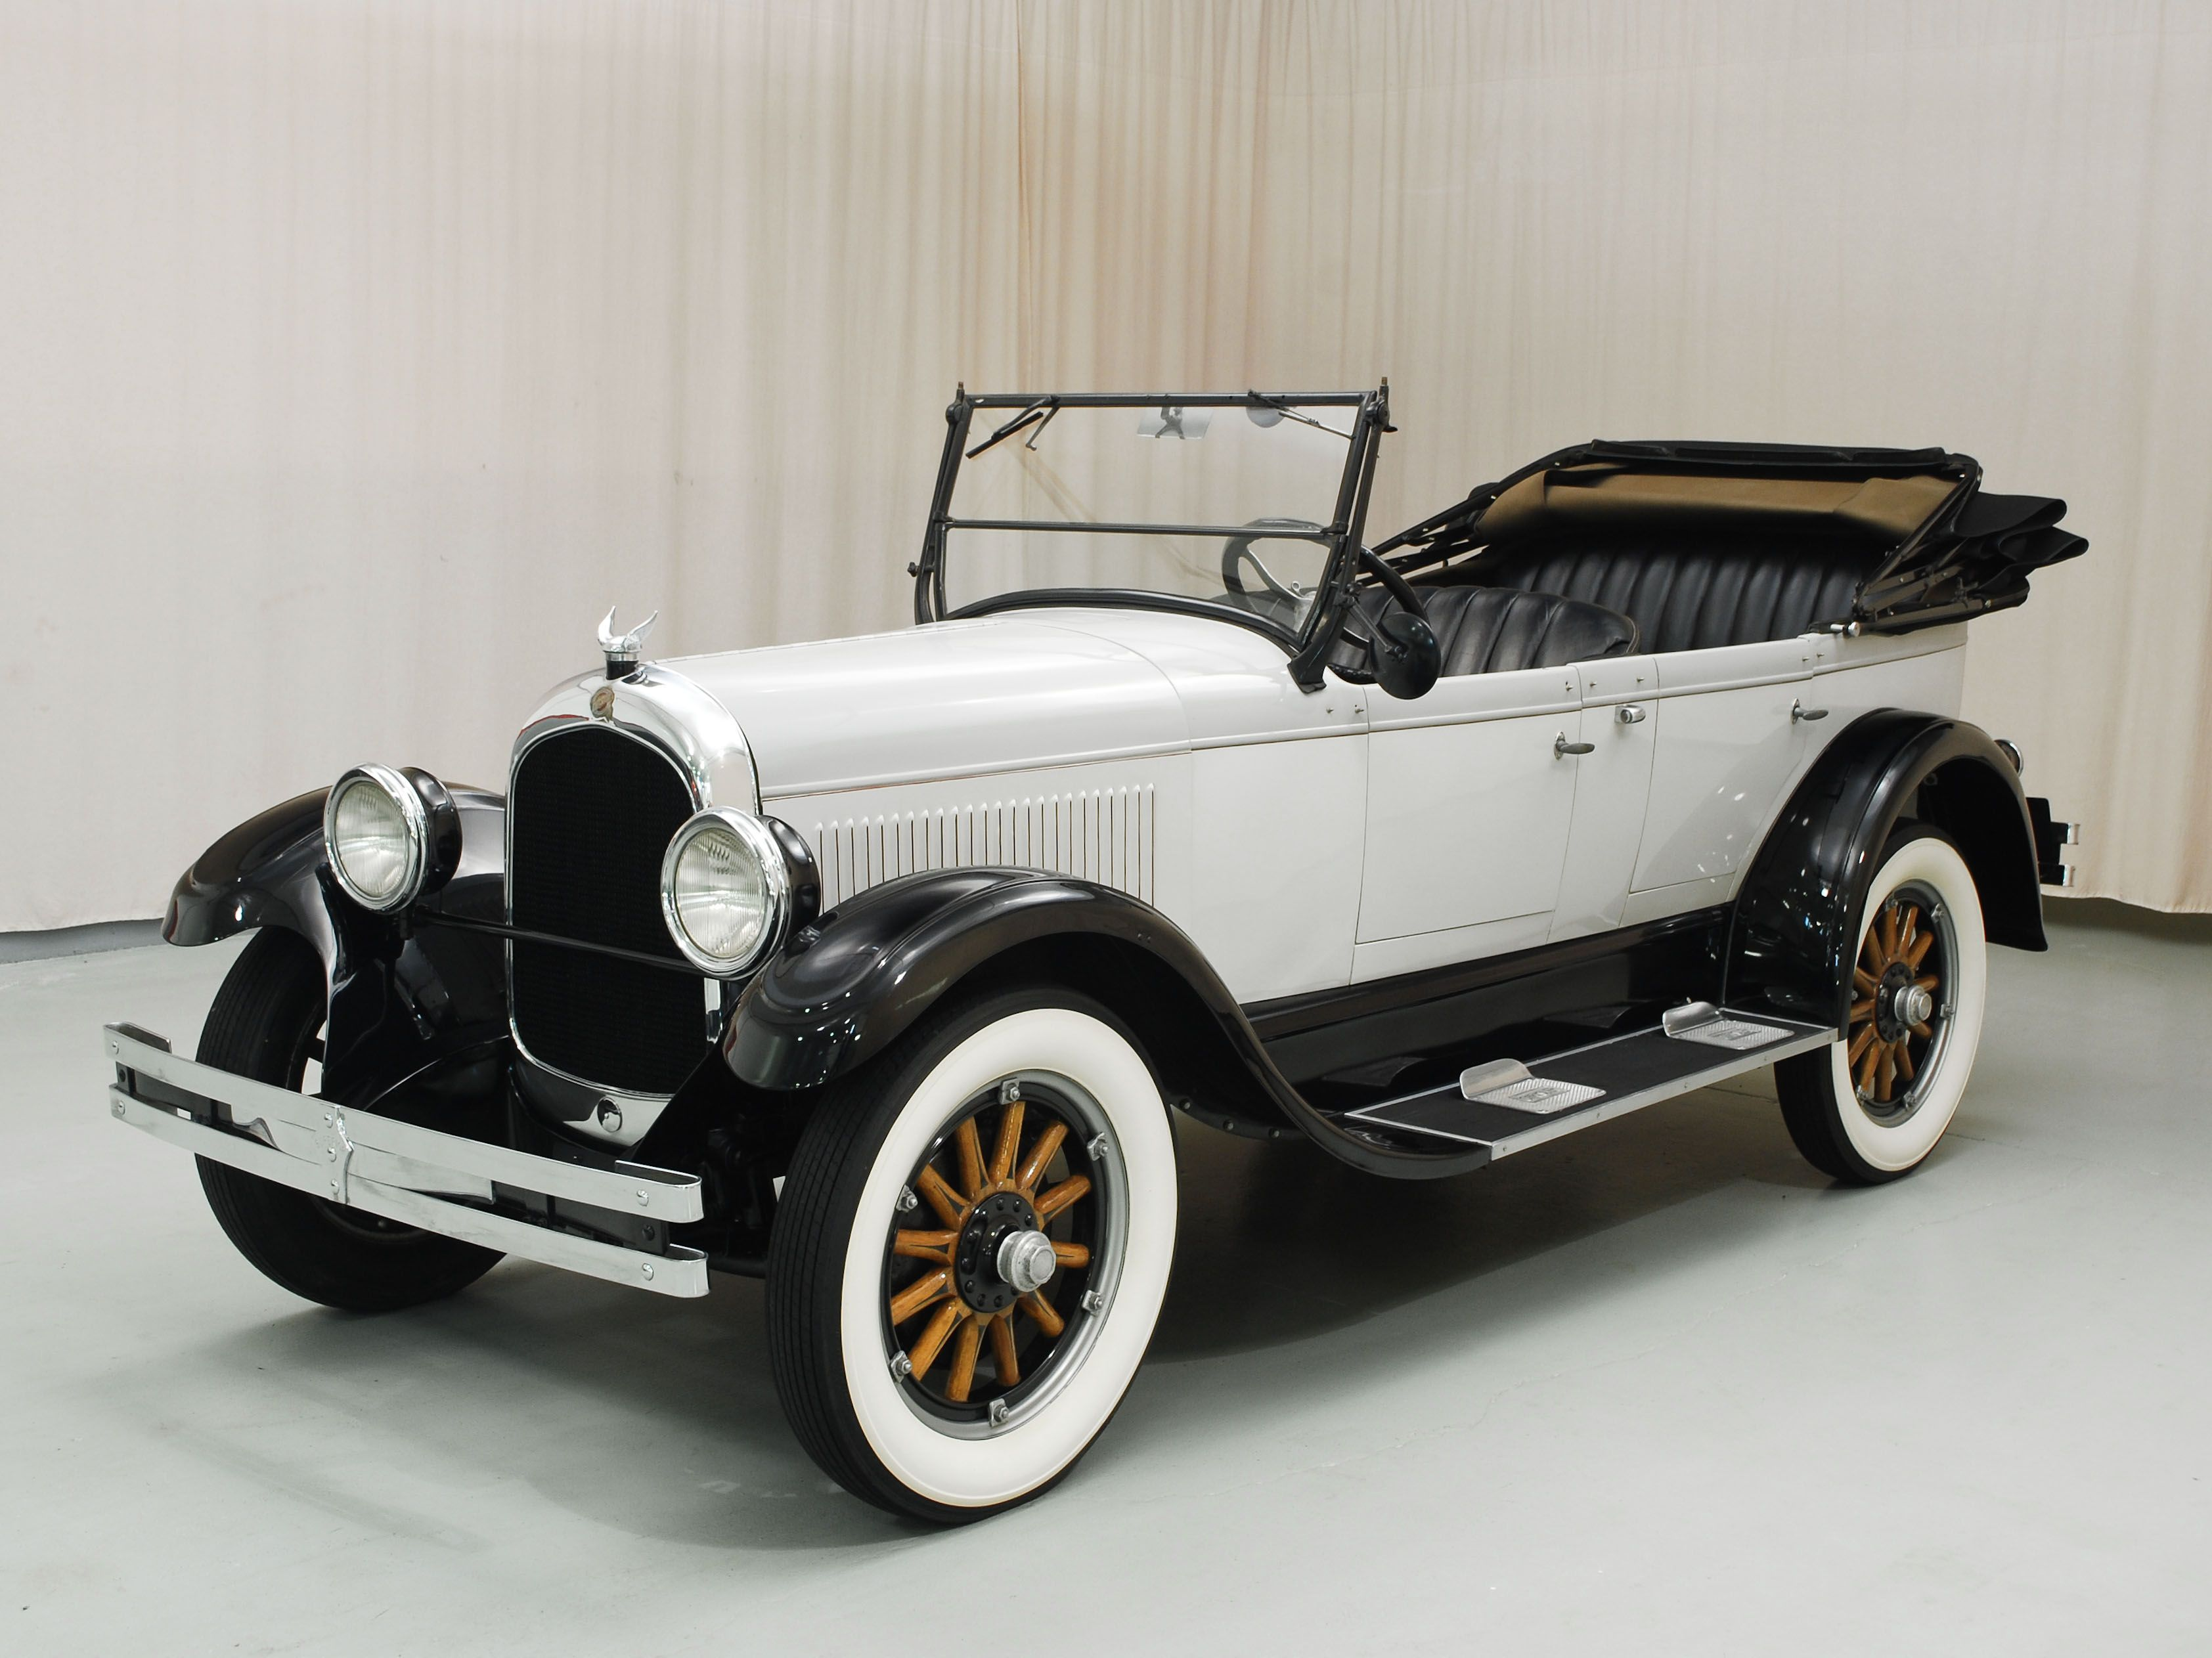 1924 Chrysler Six...Re-pin brought to you by agents of #Carinsurance ...